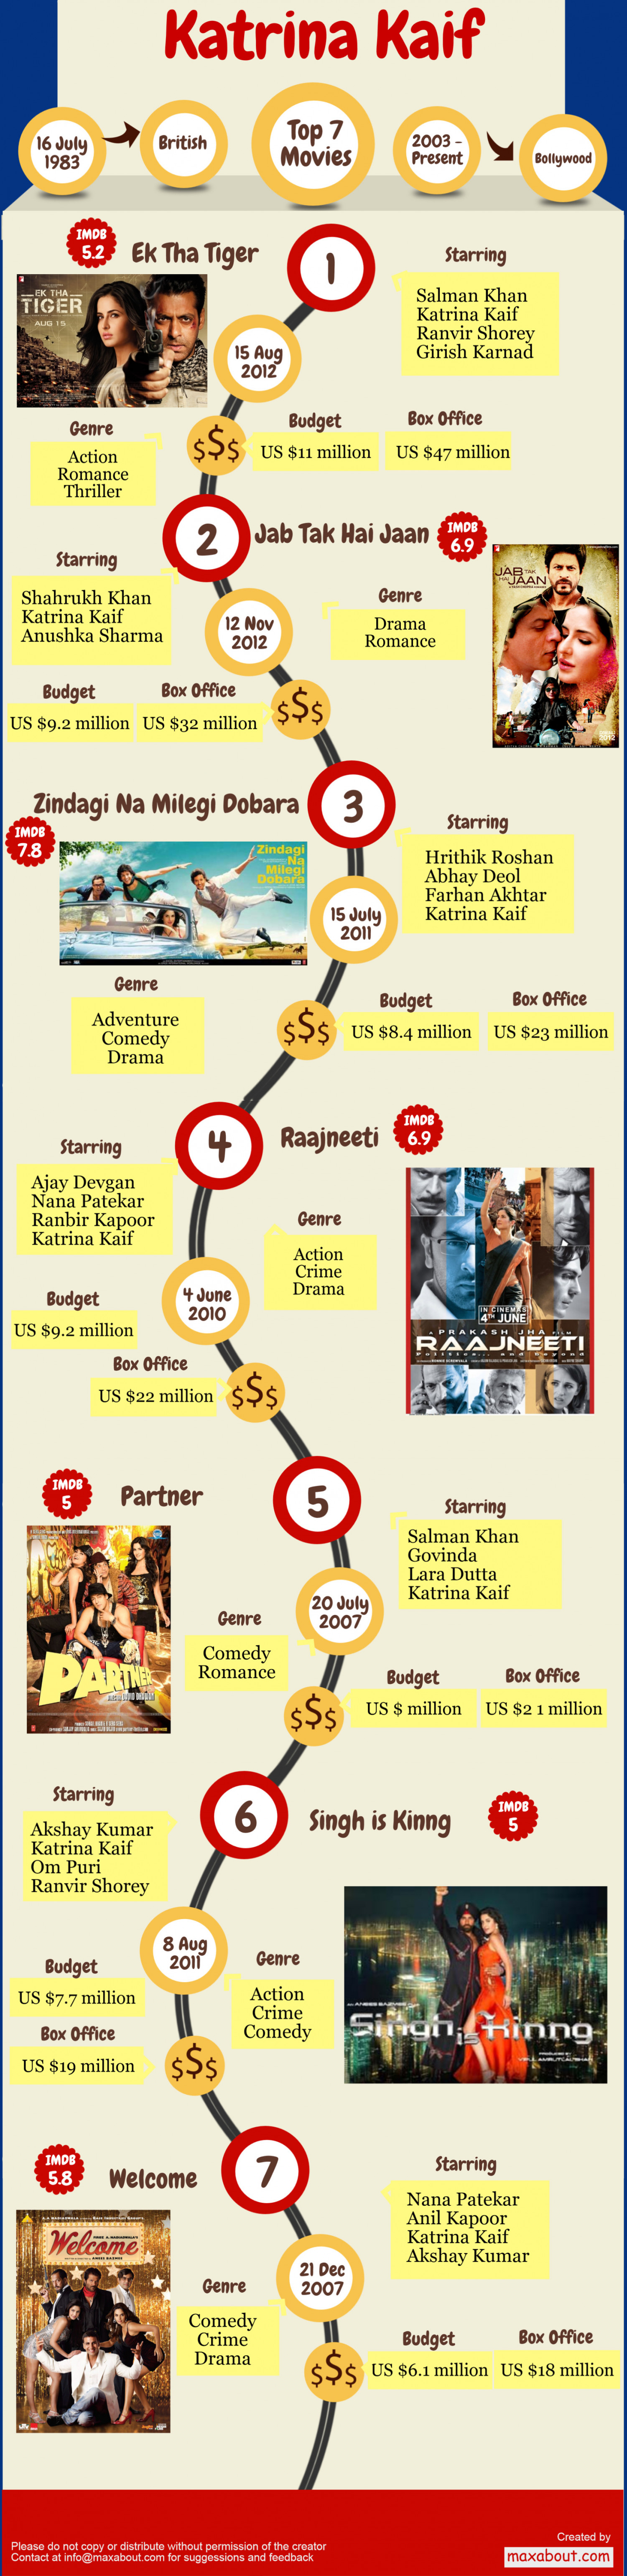 Top 7 Movies of Katrina Kaif Infographic